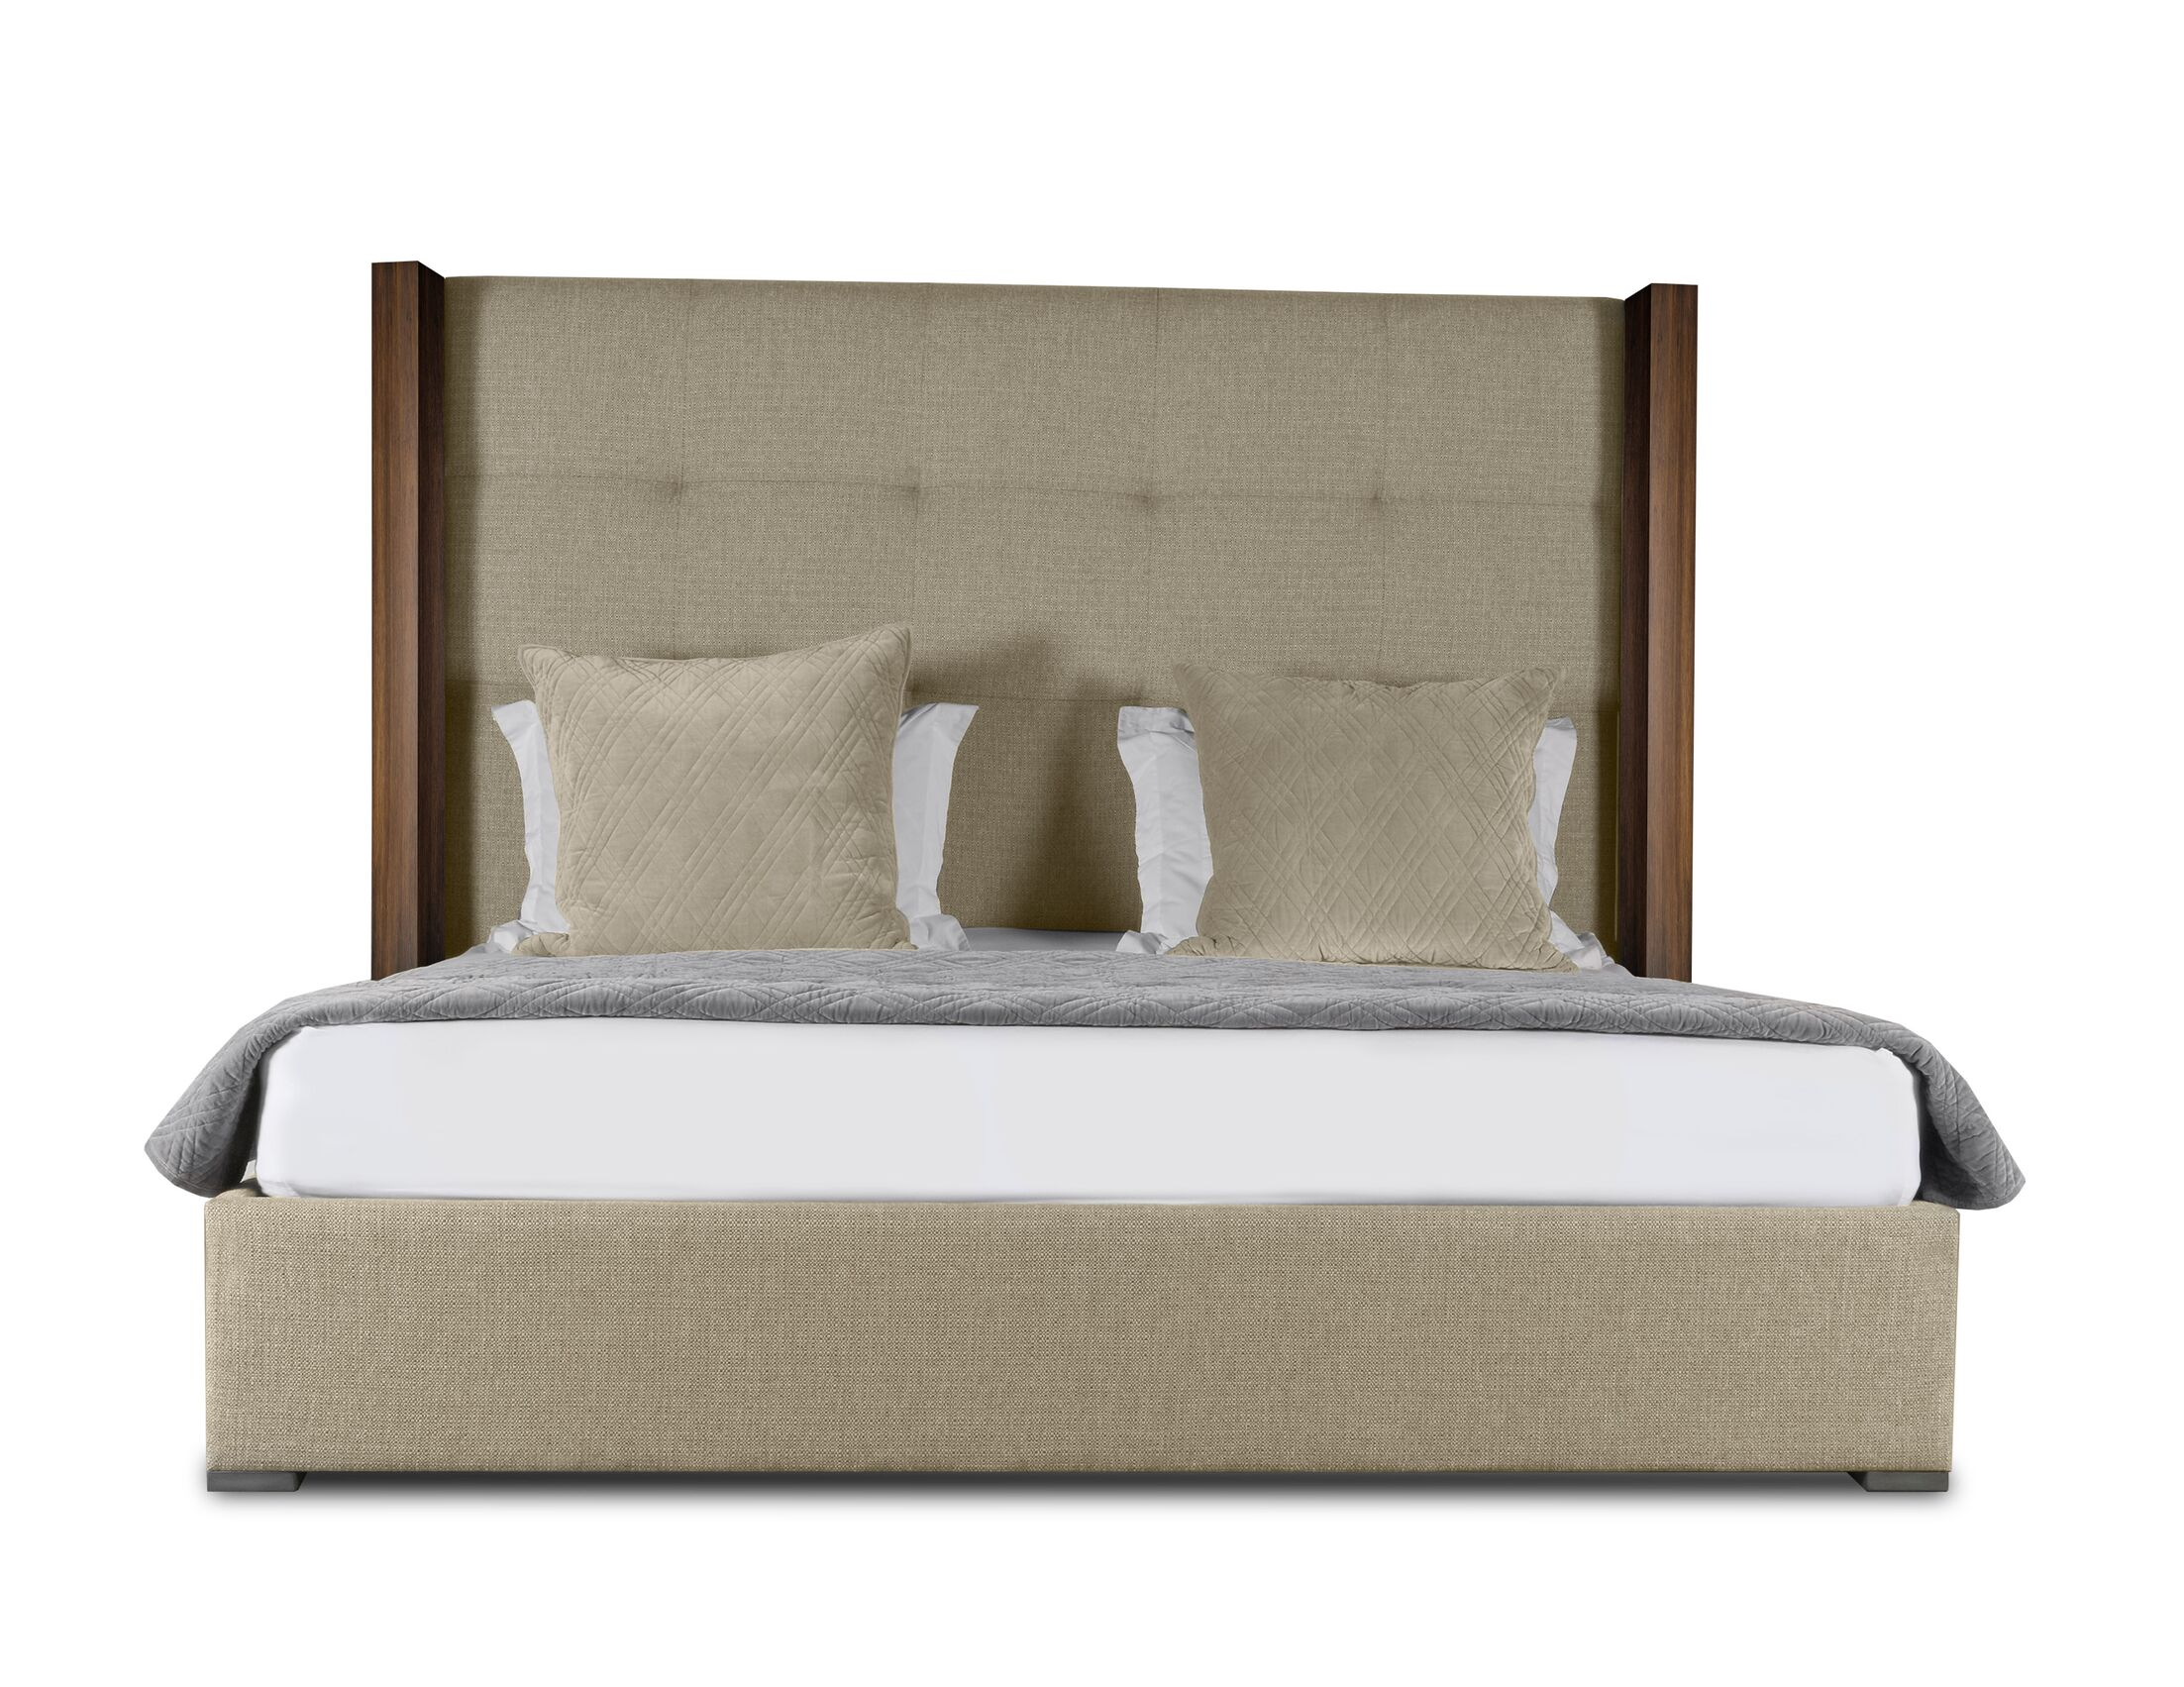 Harborcreek Button Tufted Upholstered Platform Bed Size: High Height California King, Color: Sand